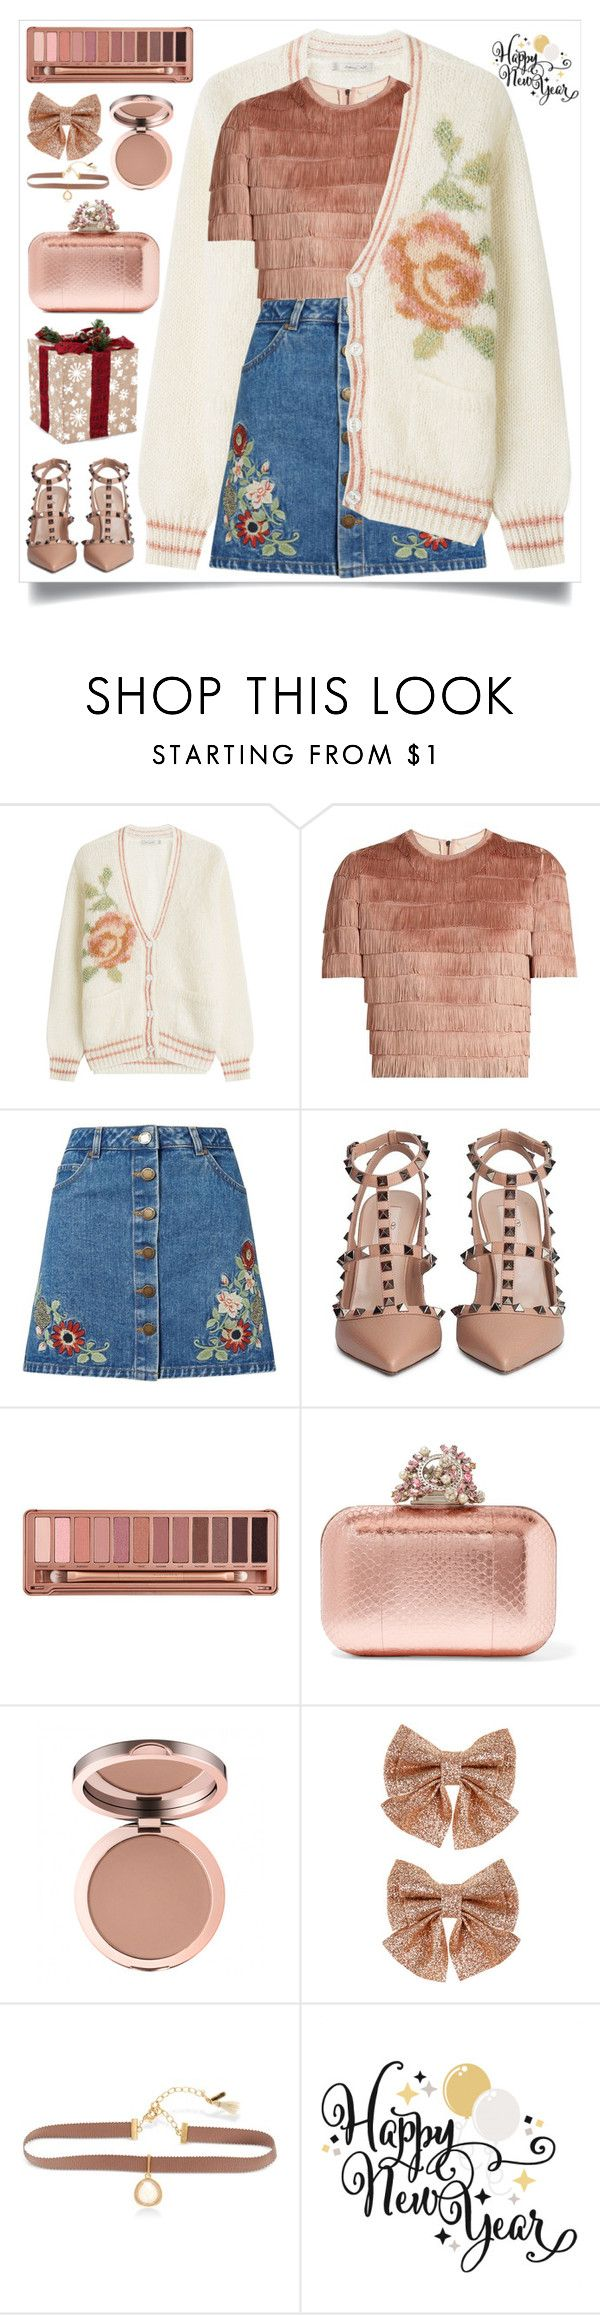 """""""Happy New Year"""" by itsybitsy62 ❤ liked on Polyvore featuring Mes Demoiselles..., Raey, Miss Selfridge, Valentino, Urban Decay, Jimmy Choo, Monsoon, Lonna & Lilly and rosegold"""